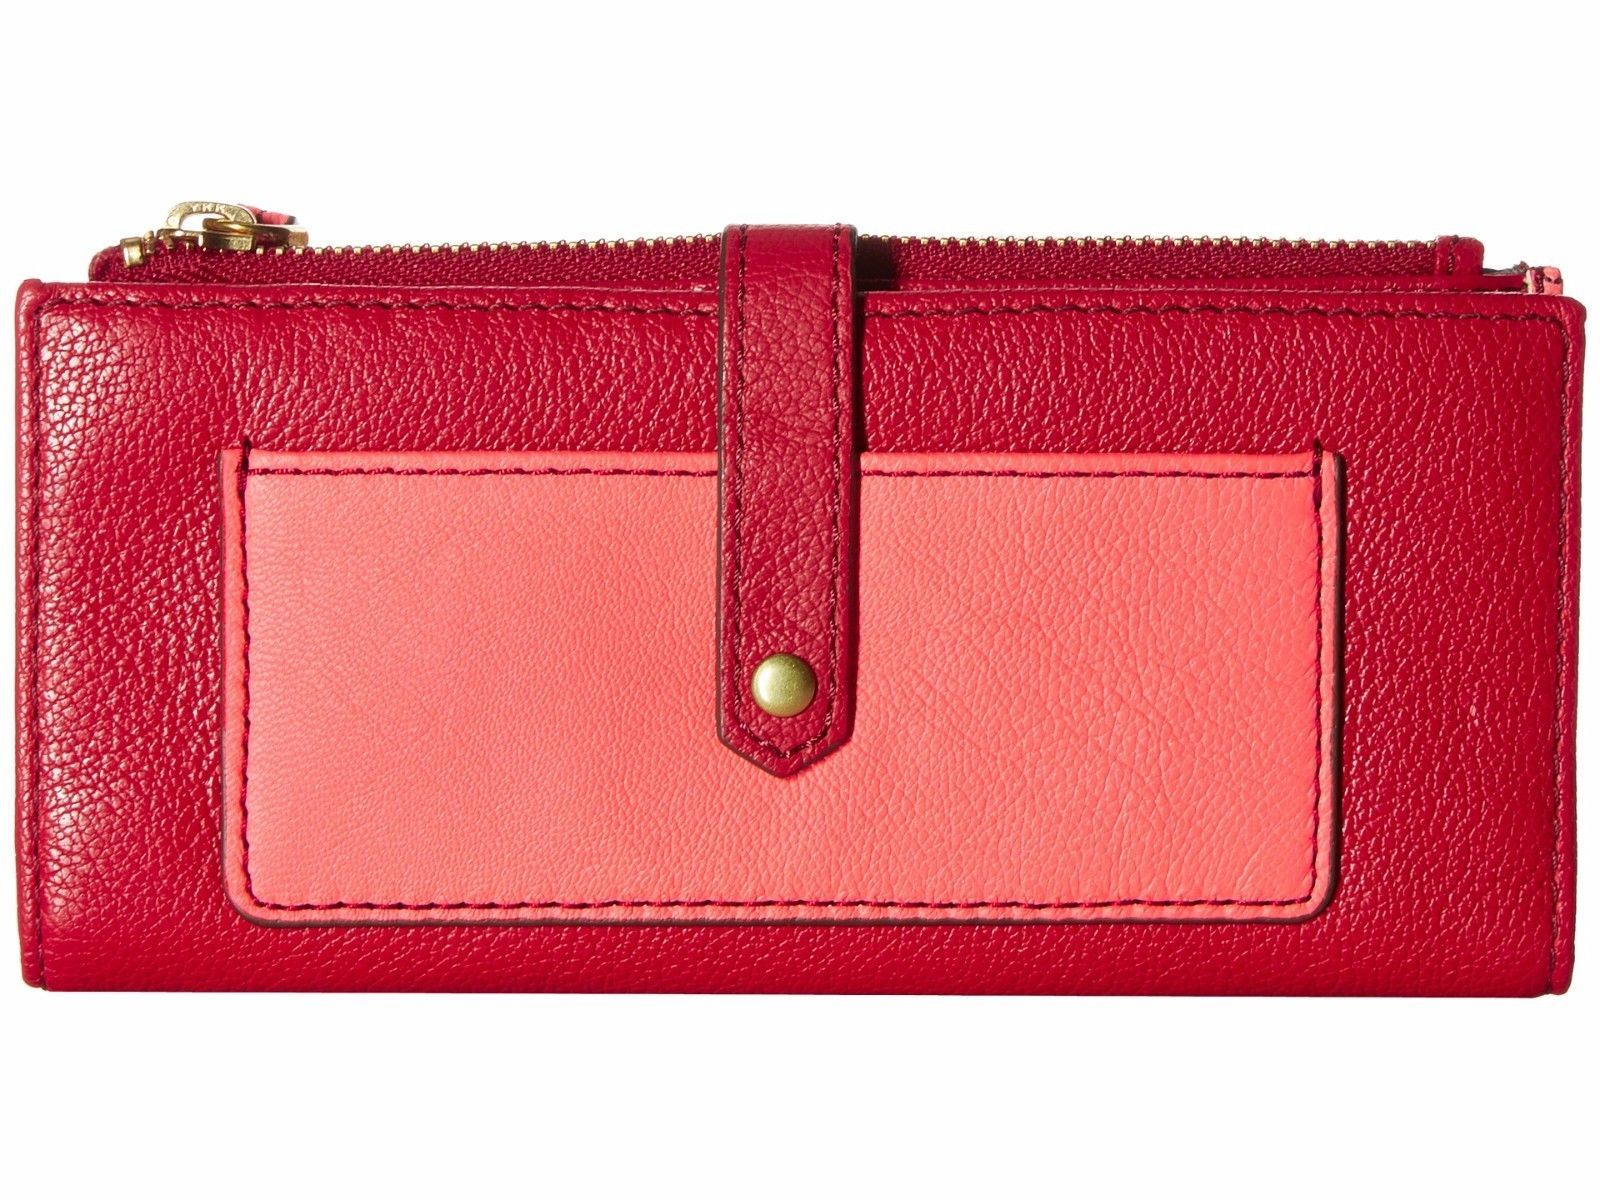 NEW FOSSIL WOMEN'S LEATHER KEELY TAB CLUTCH CREDIT CARD ID WALLET RED MULTI